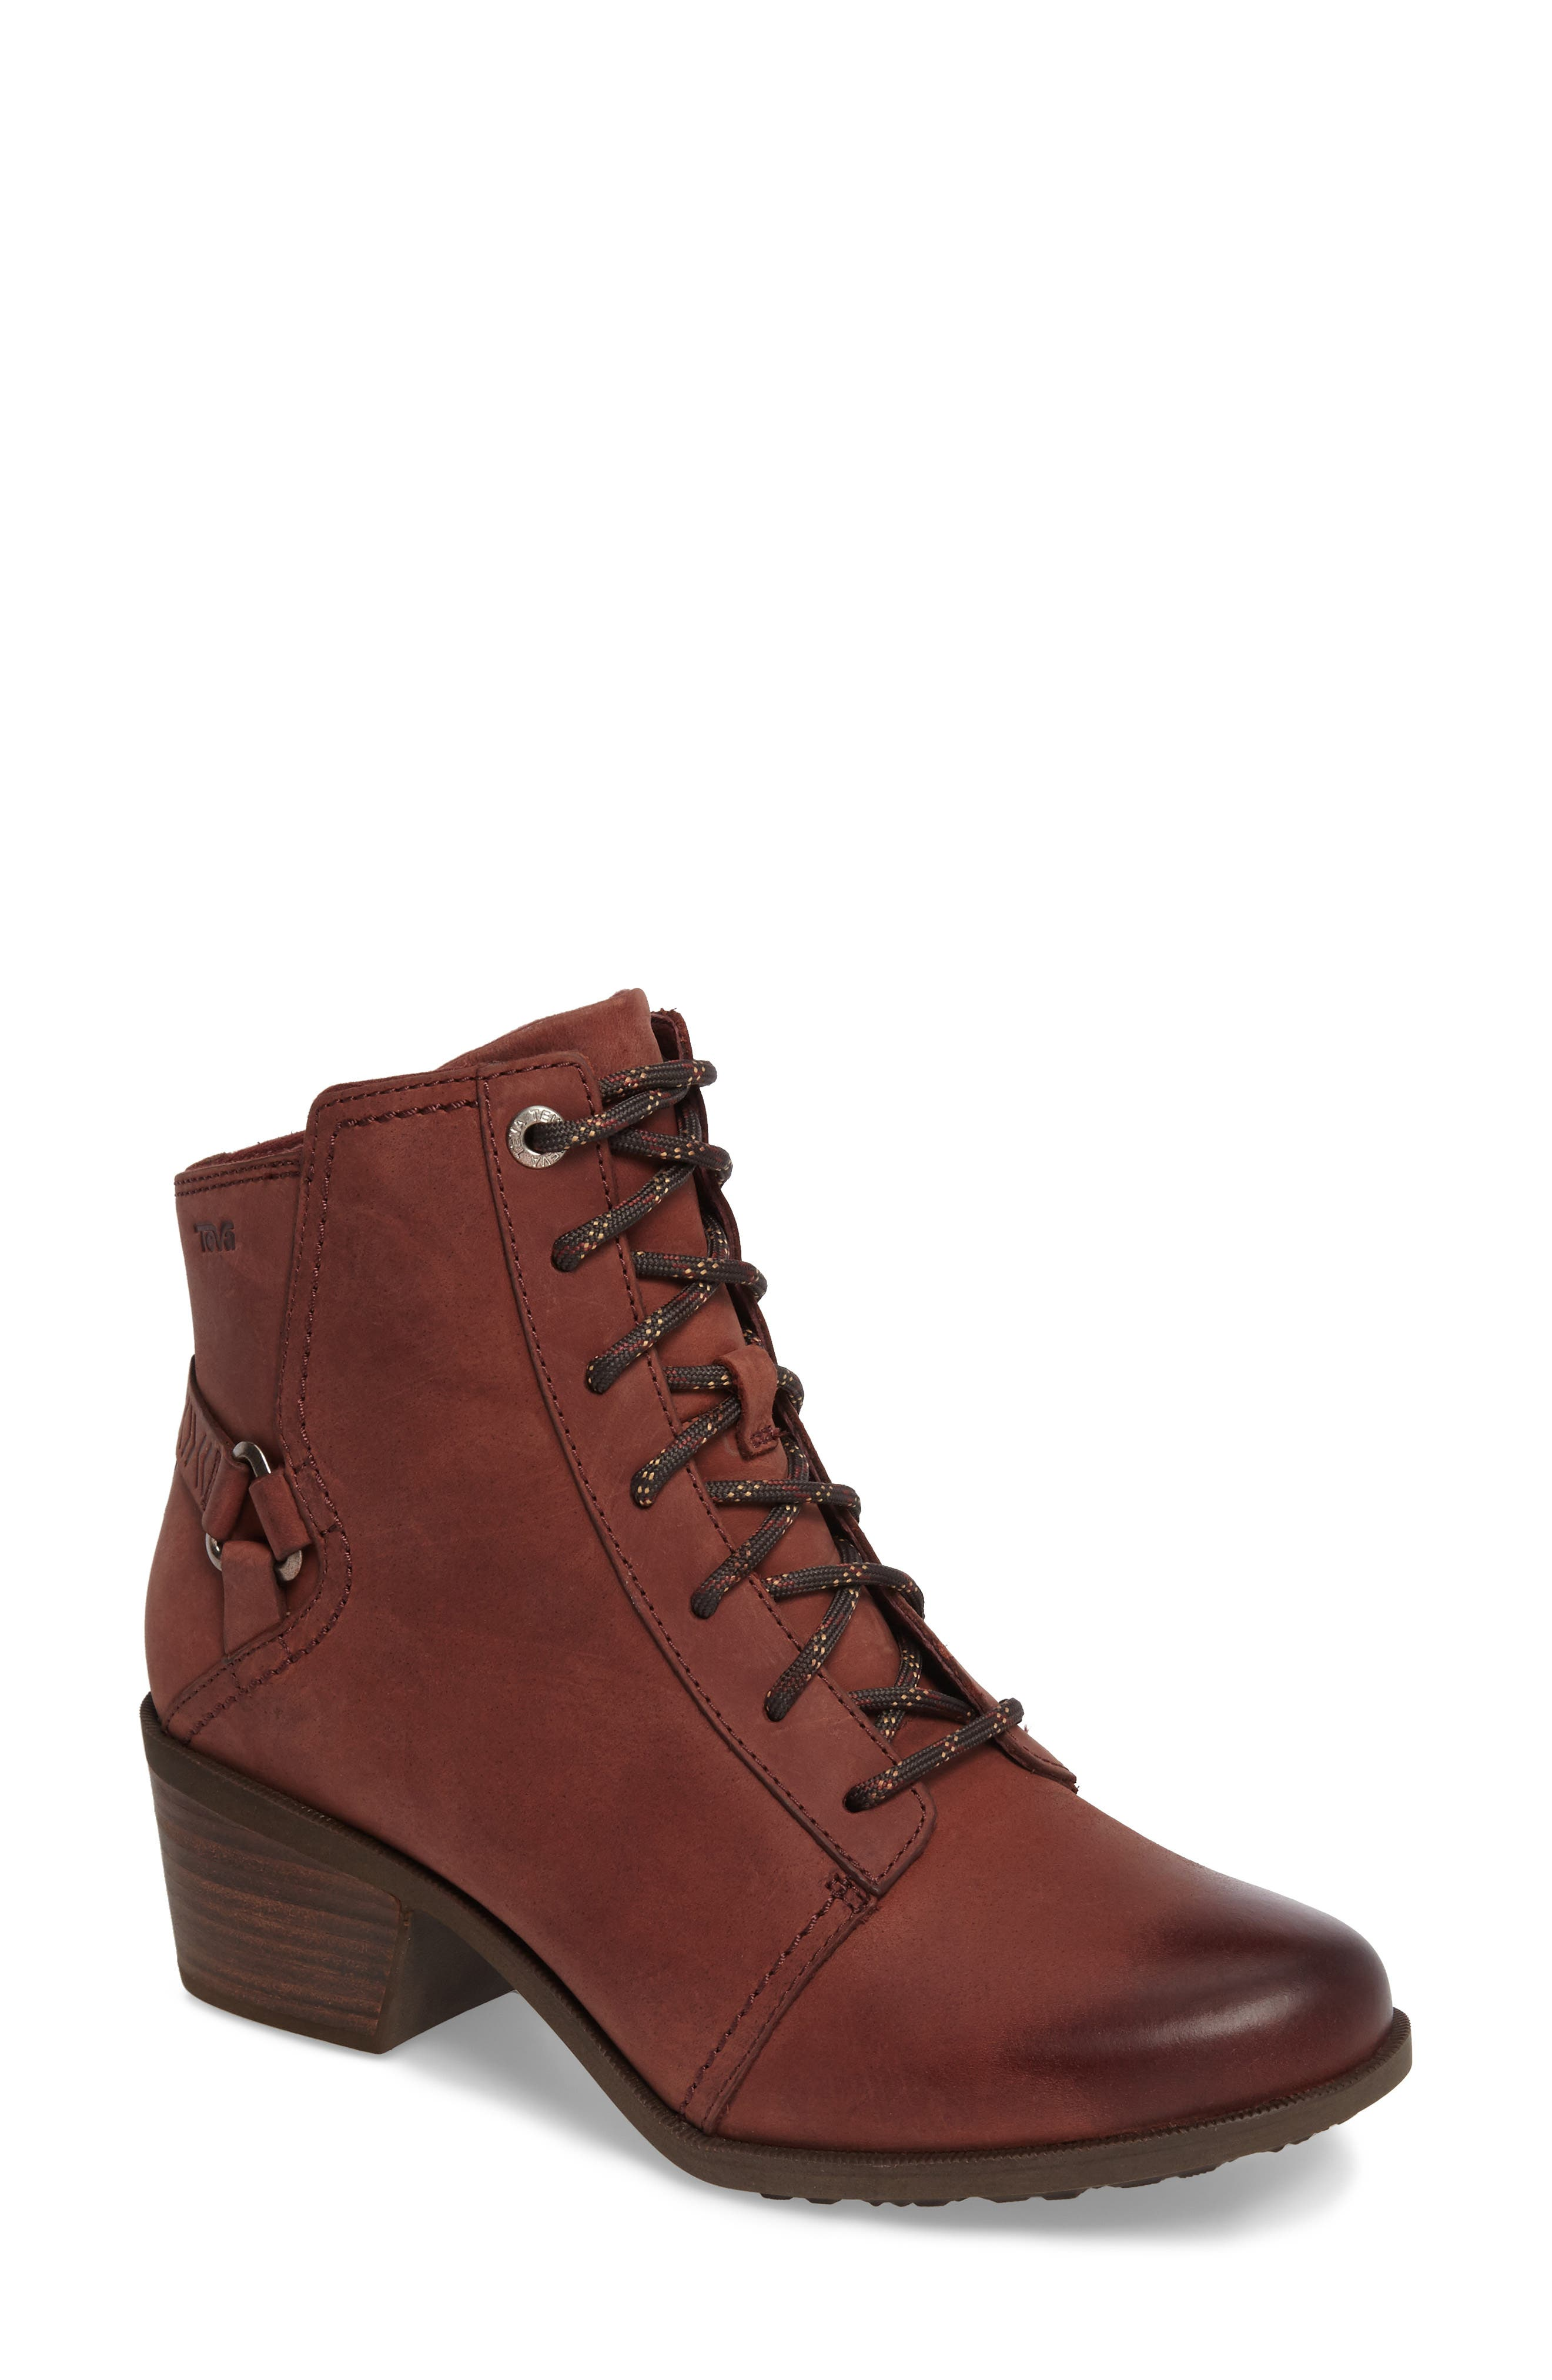 Foxy Lace-Up Waterproof Boot,                             Main thumbnail 1, color,                             Redwood Leather